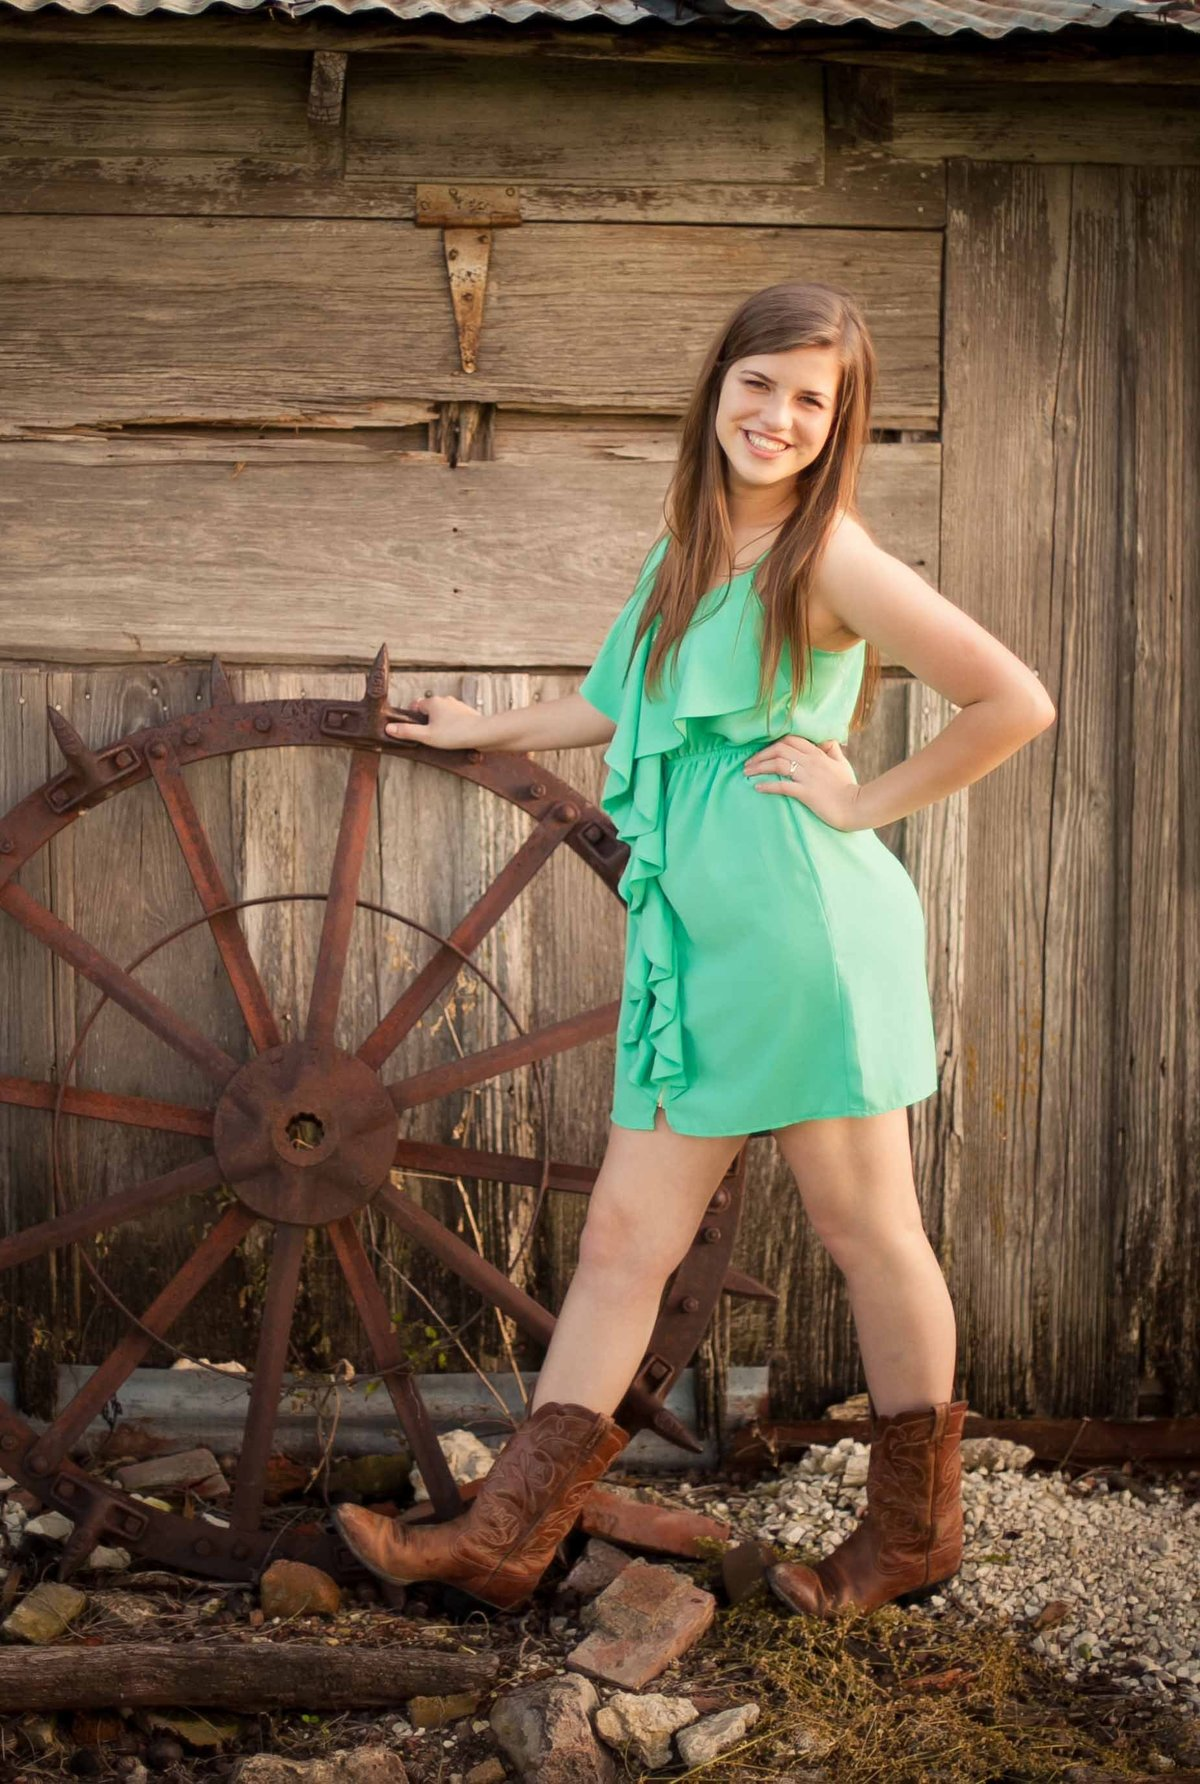 Girl in Cowboy boots at North Texas farm in front of rustic rusted wagon wheel and barn